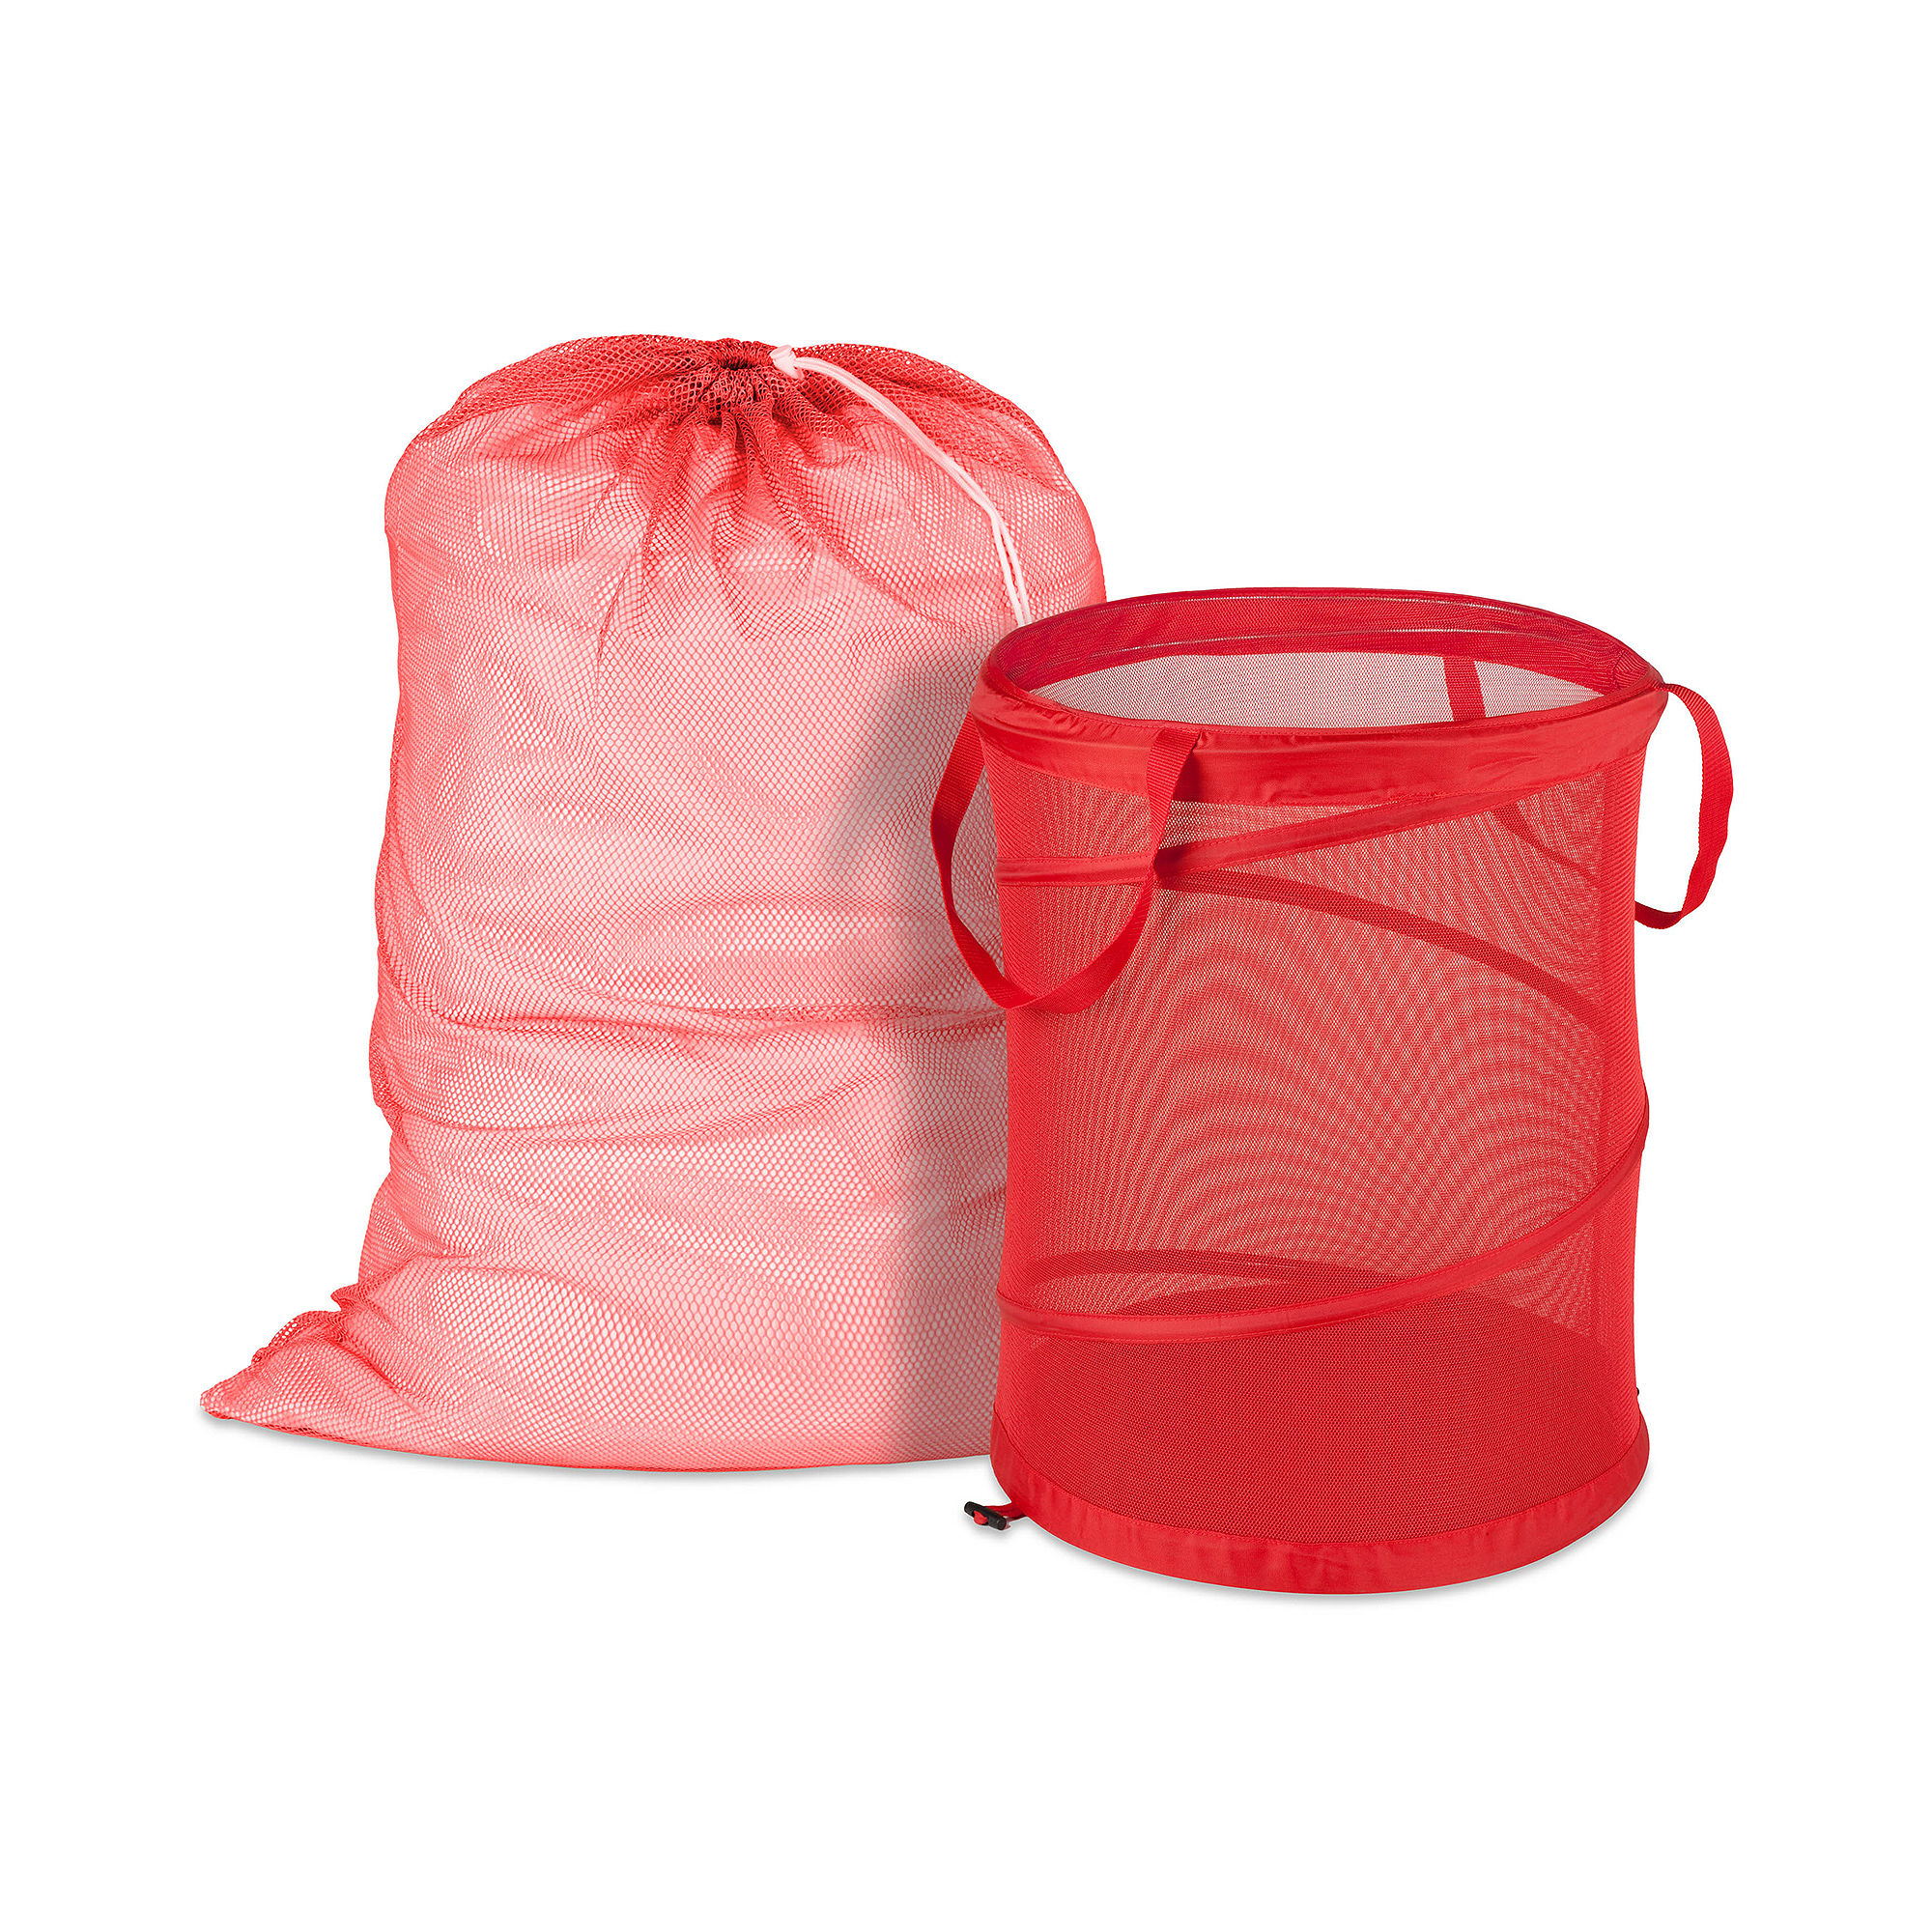 Honey-Can-Do Mesh Laundry Bag and Hamper